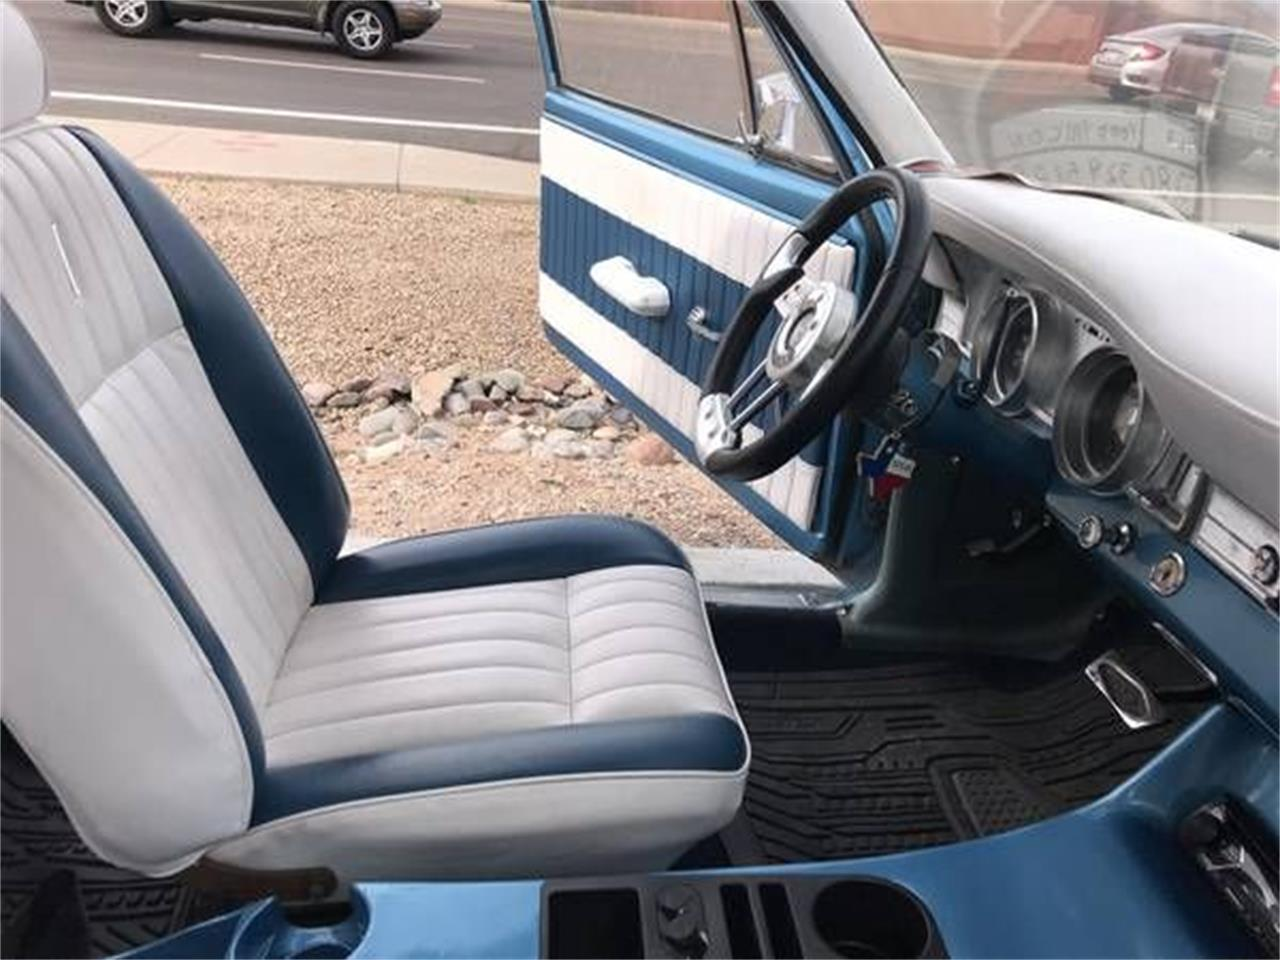 1967 Ford Falcon for sale in Cadillac, MI – photo 15